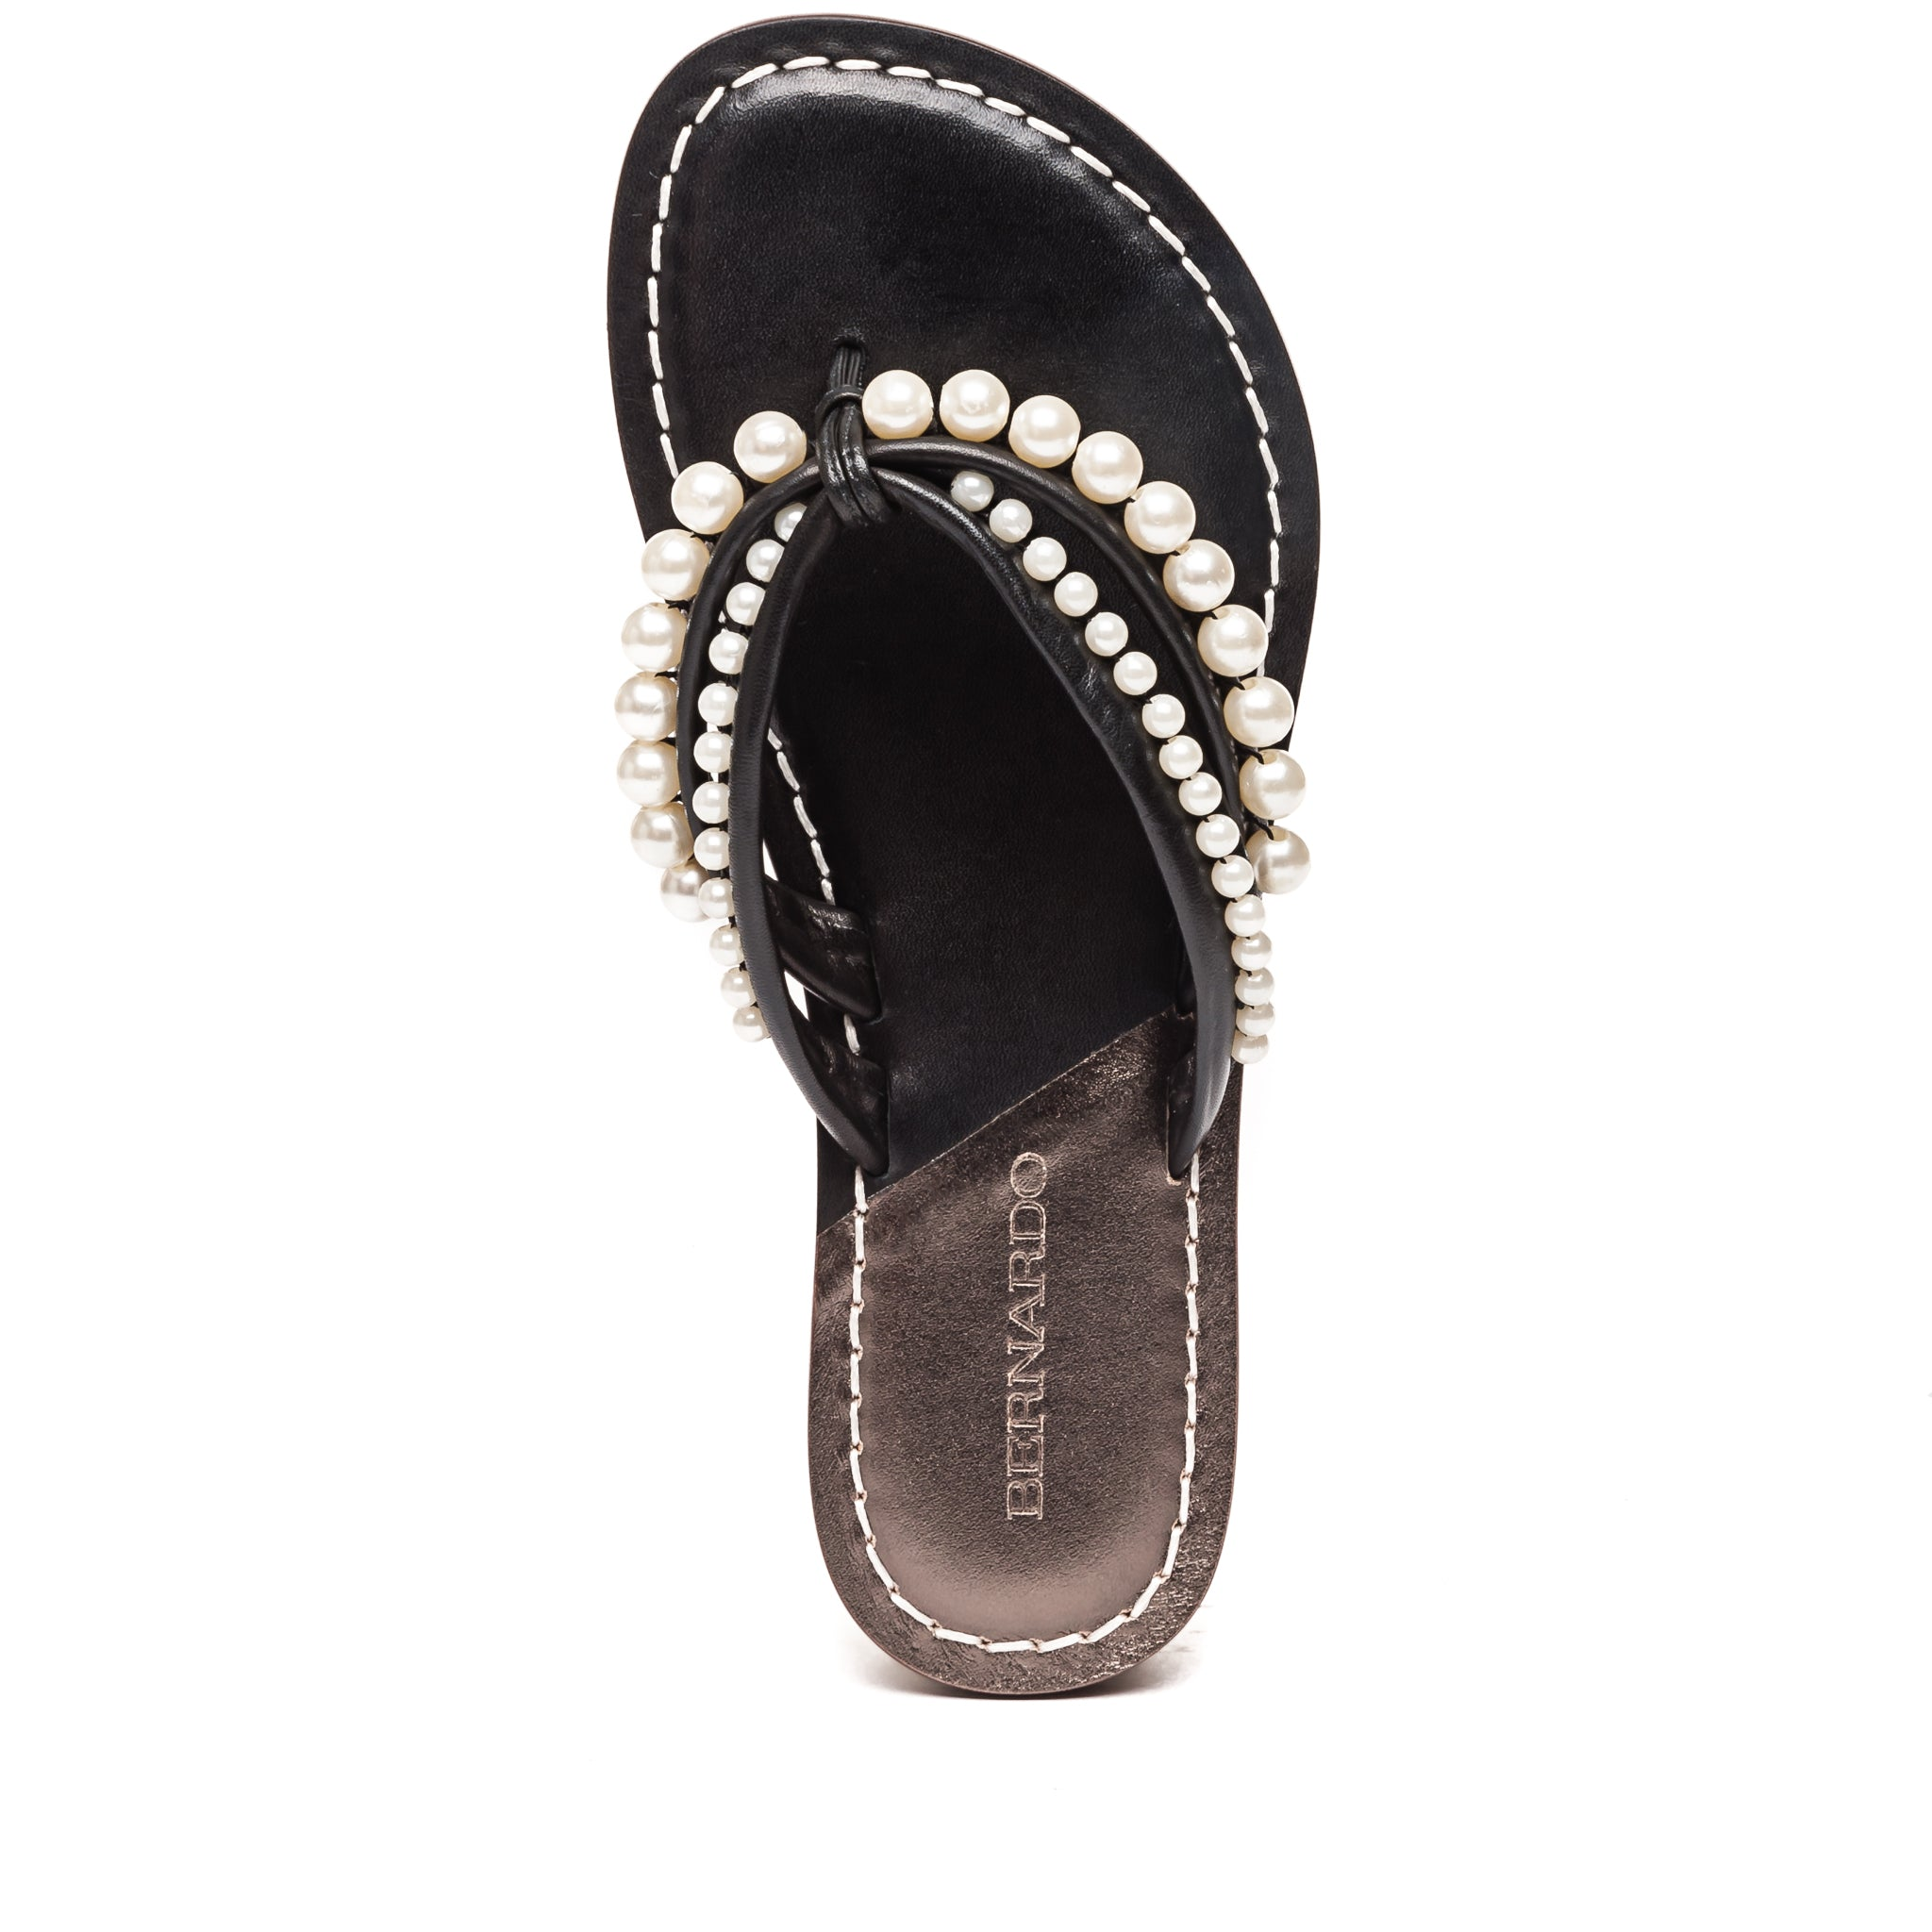 Top photo of Bernardo 1946's Miami pearl embellished 2 strap sandal, in black leather.